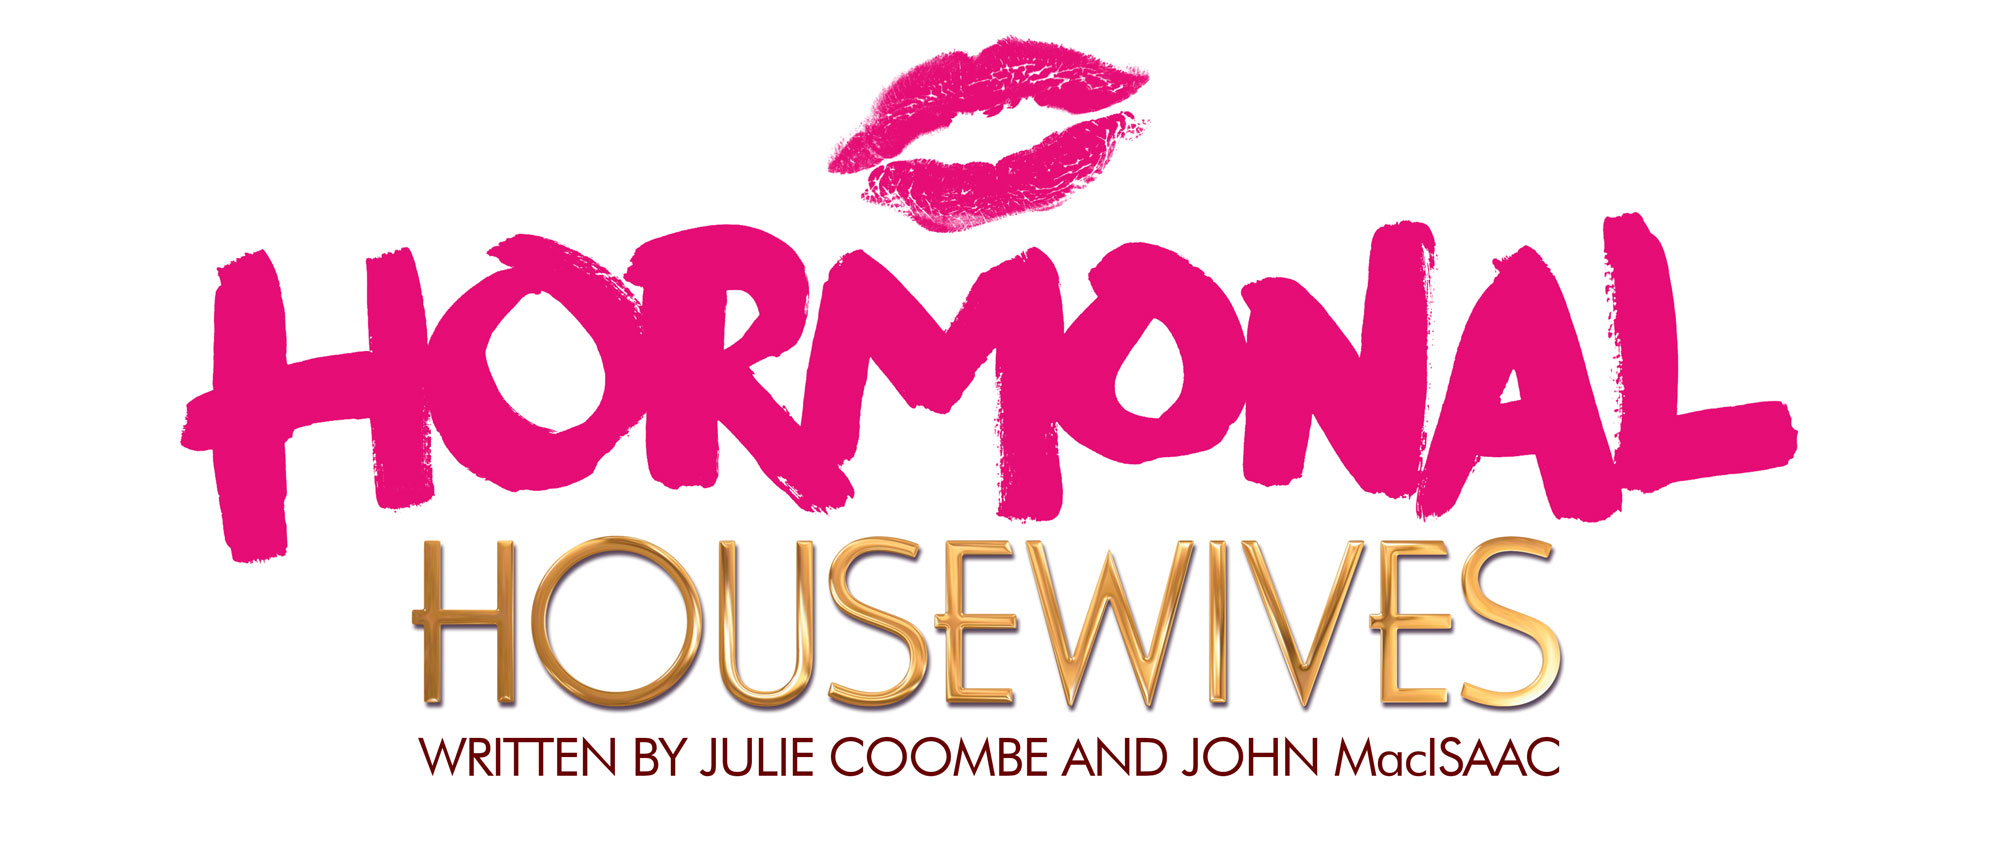 Hormonal Housewives: Victoria Theatre